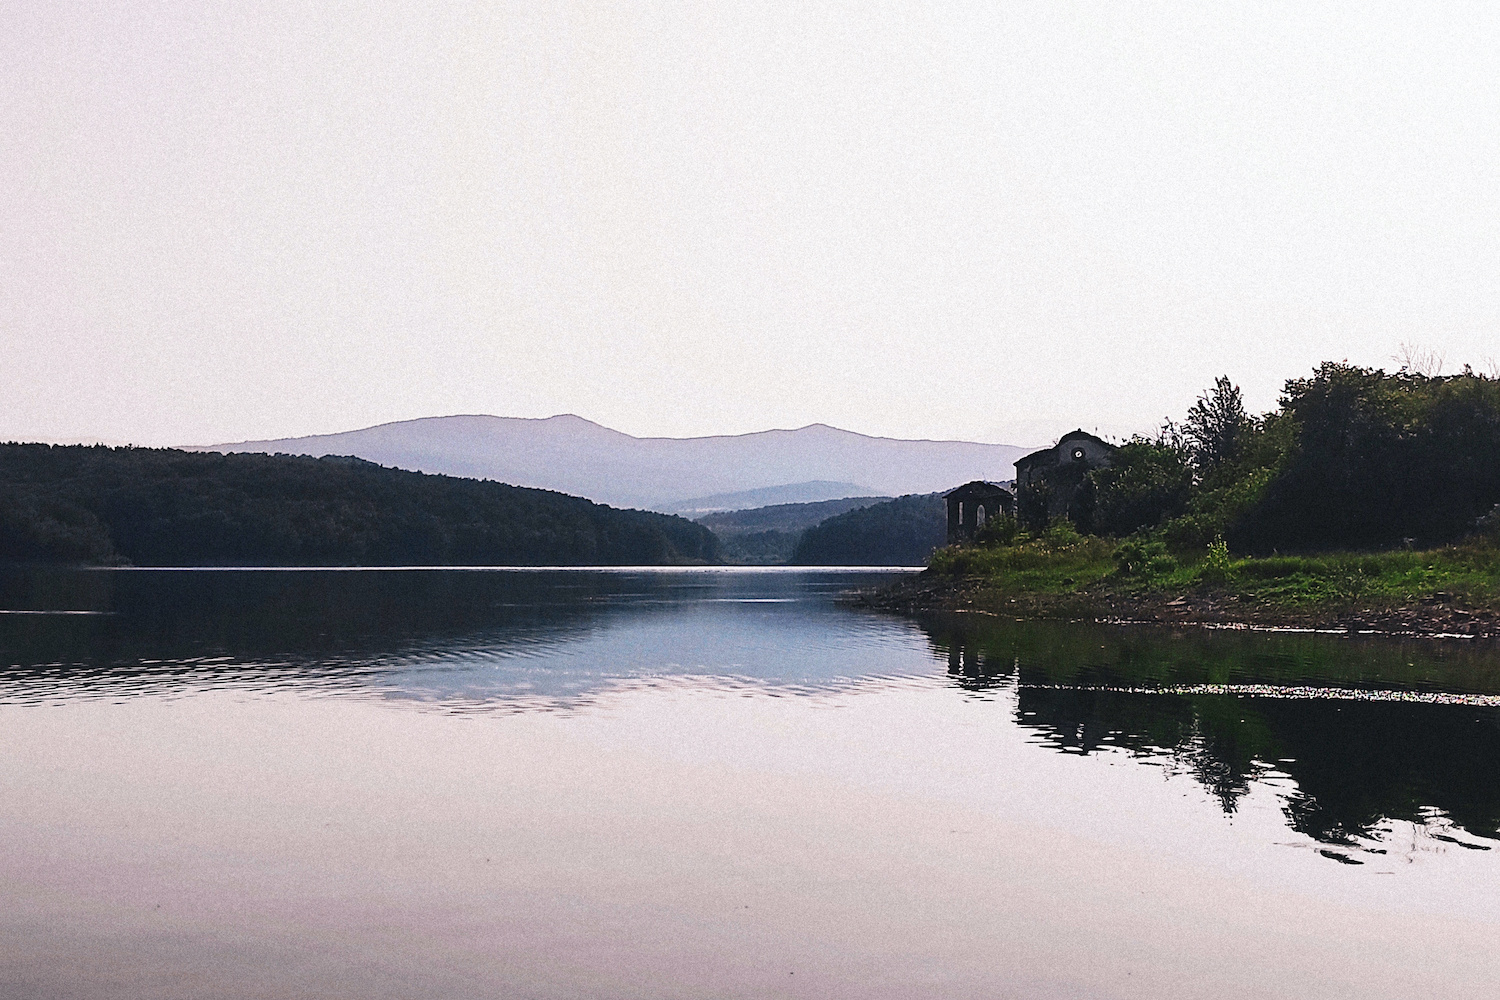 A picture of the Ogosta reservoir today